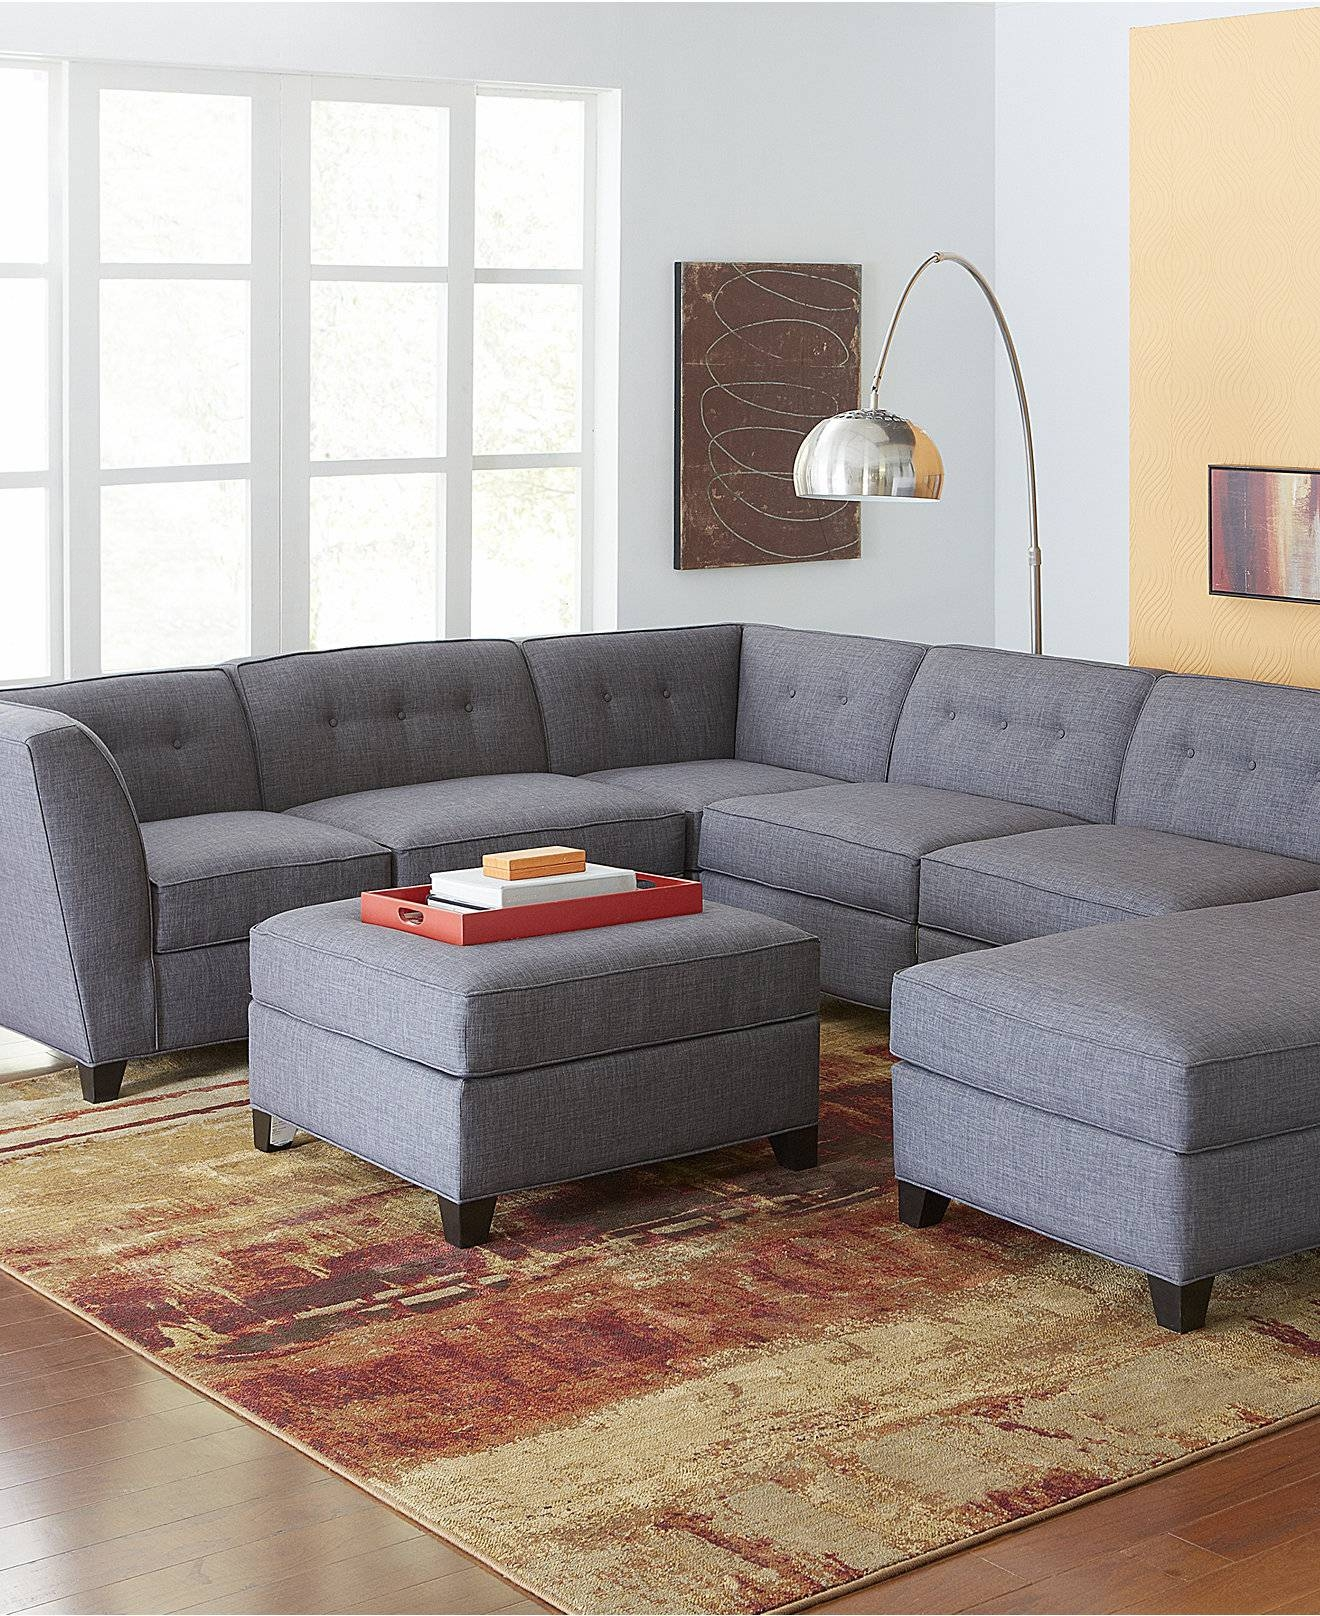 Interesting Gray Modular Sectional Sofa 83 For Sectional Sofas in Craigslist Sectional Sofa (Image 17 of 30)